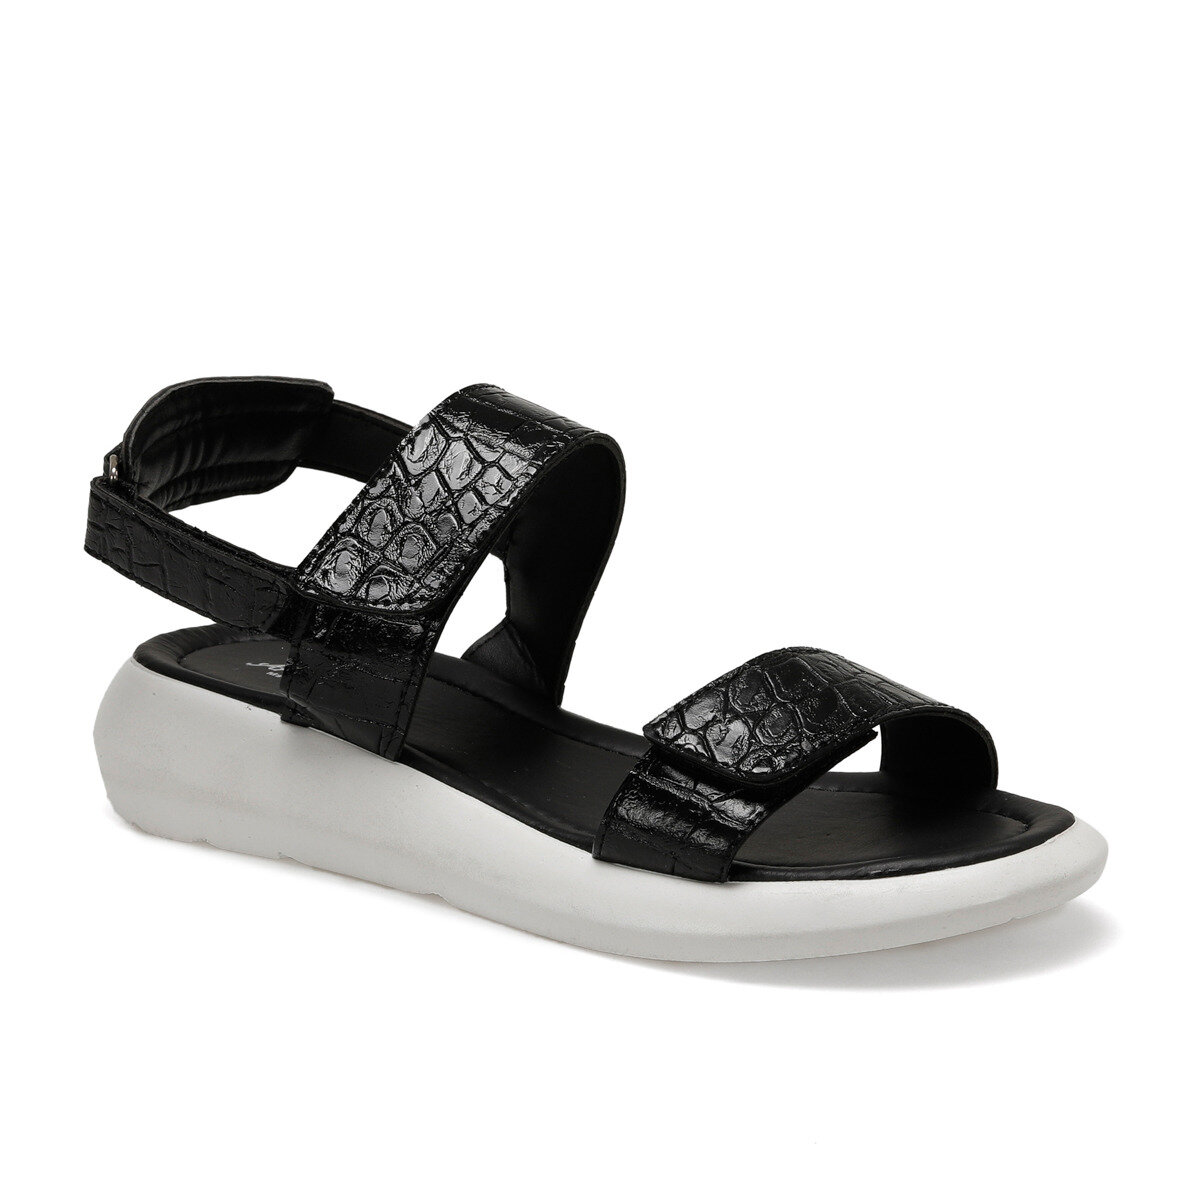 FLO 20S-622 KROKO Women Sandals BUTIGO